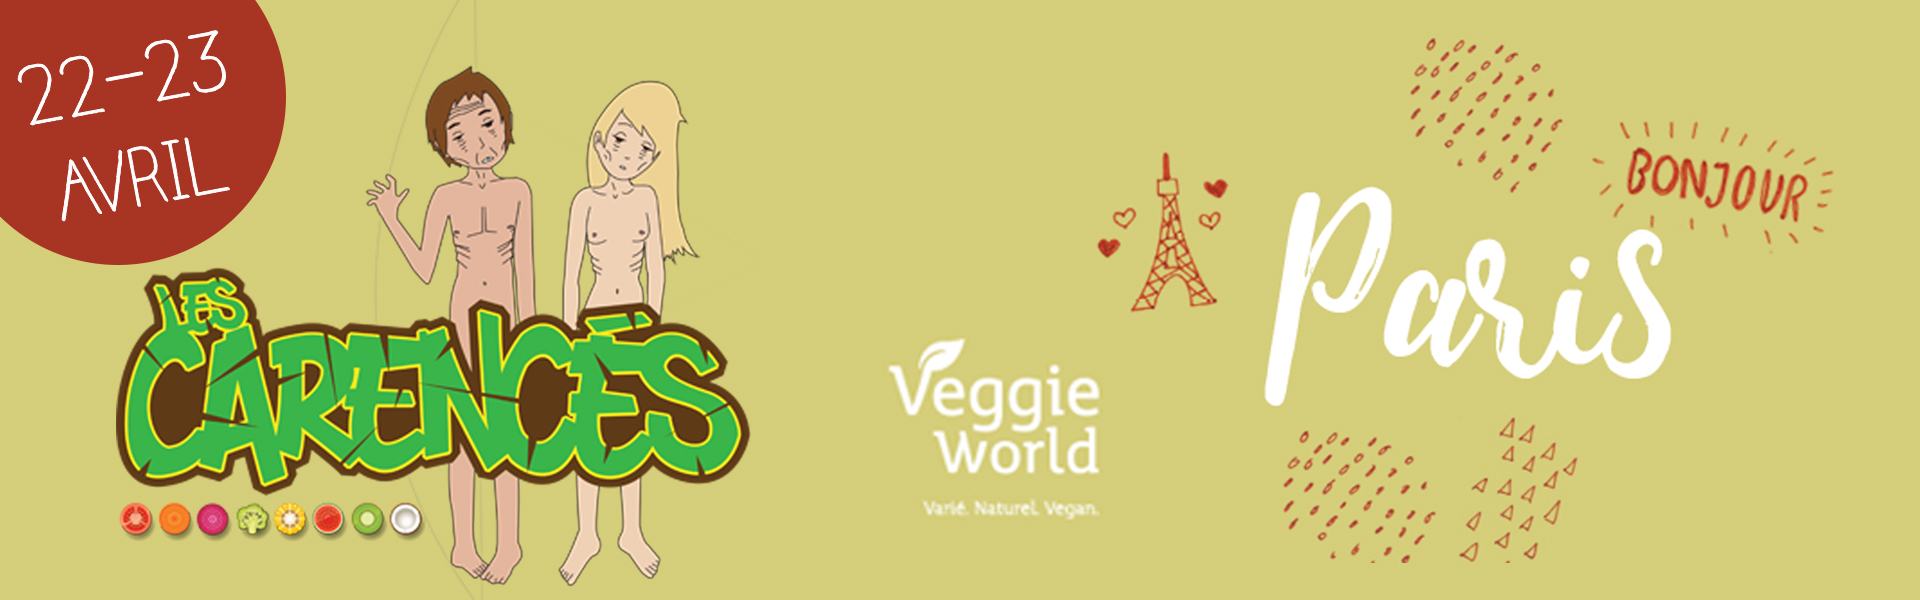 carencés veggieworld paris